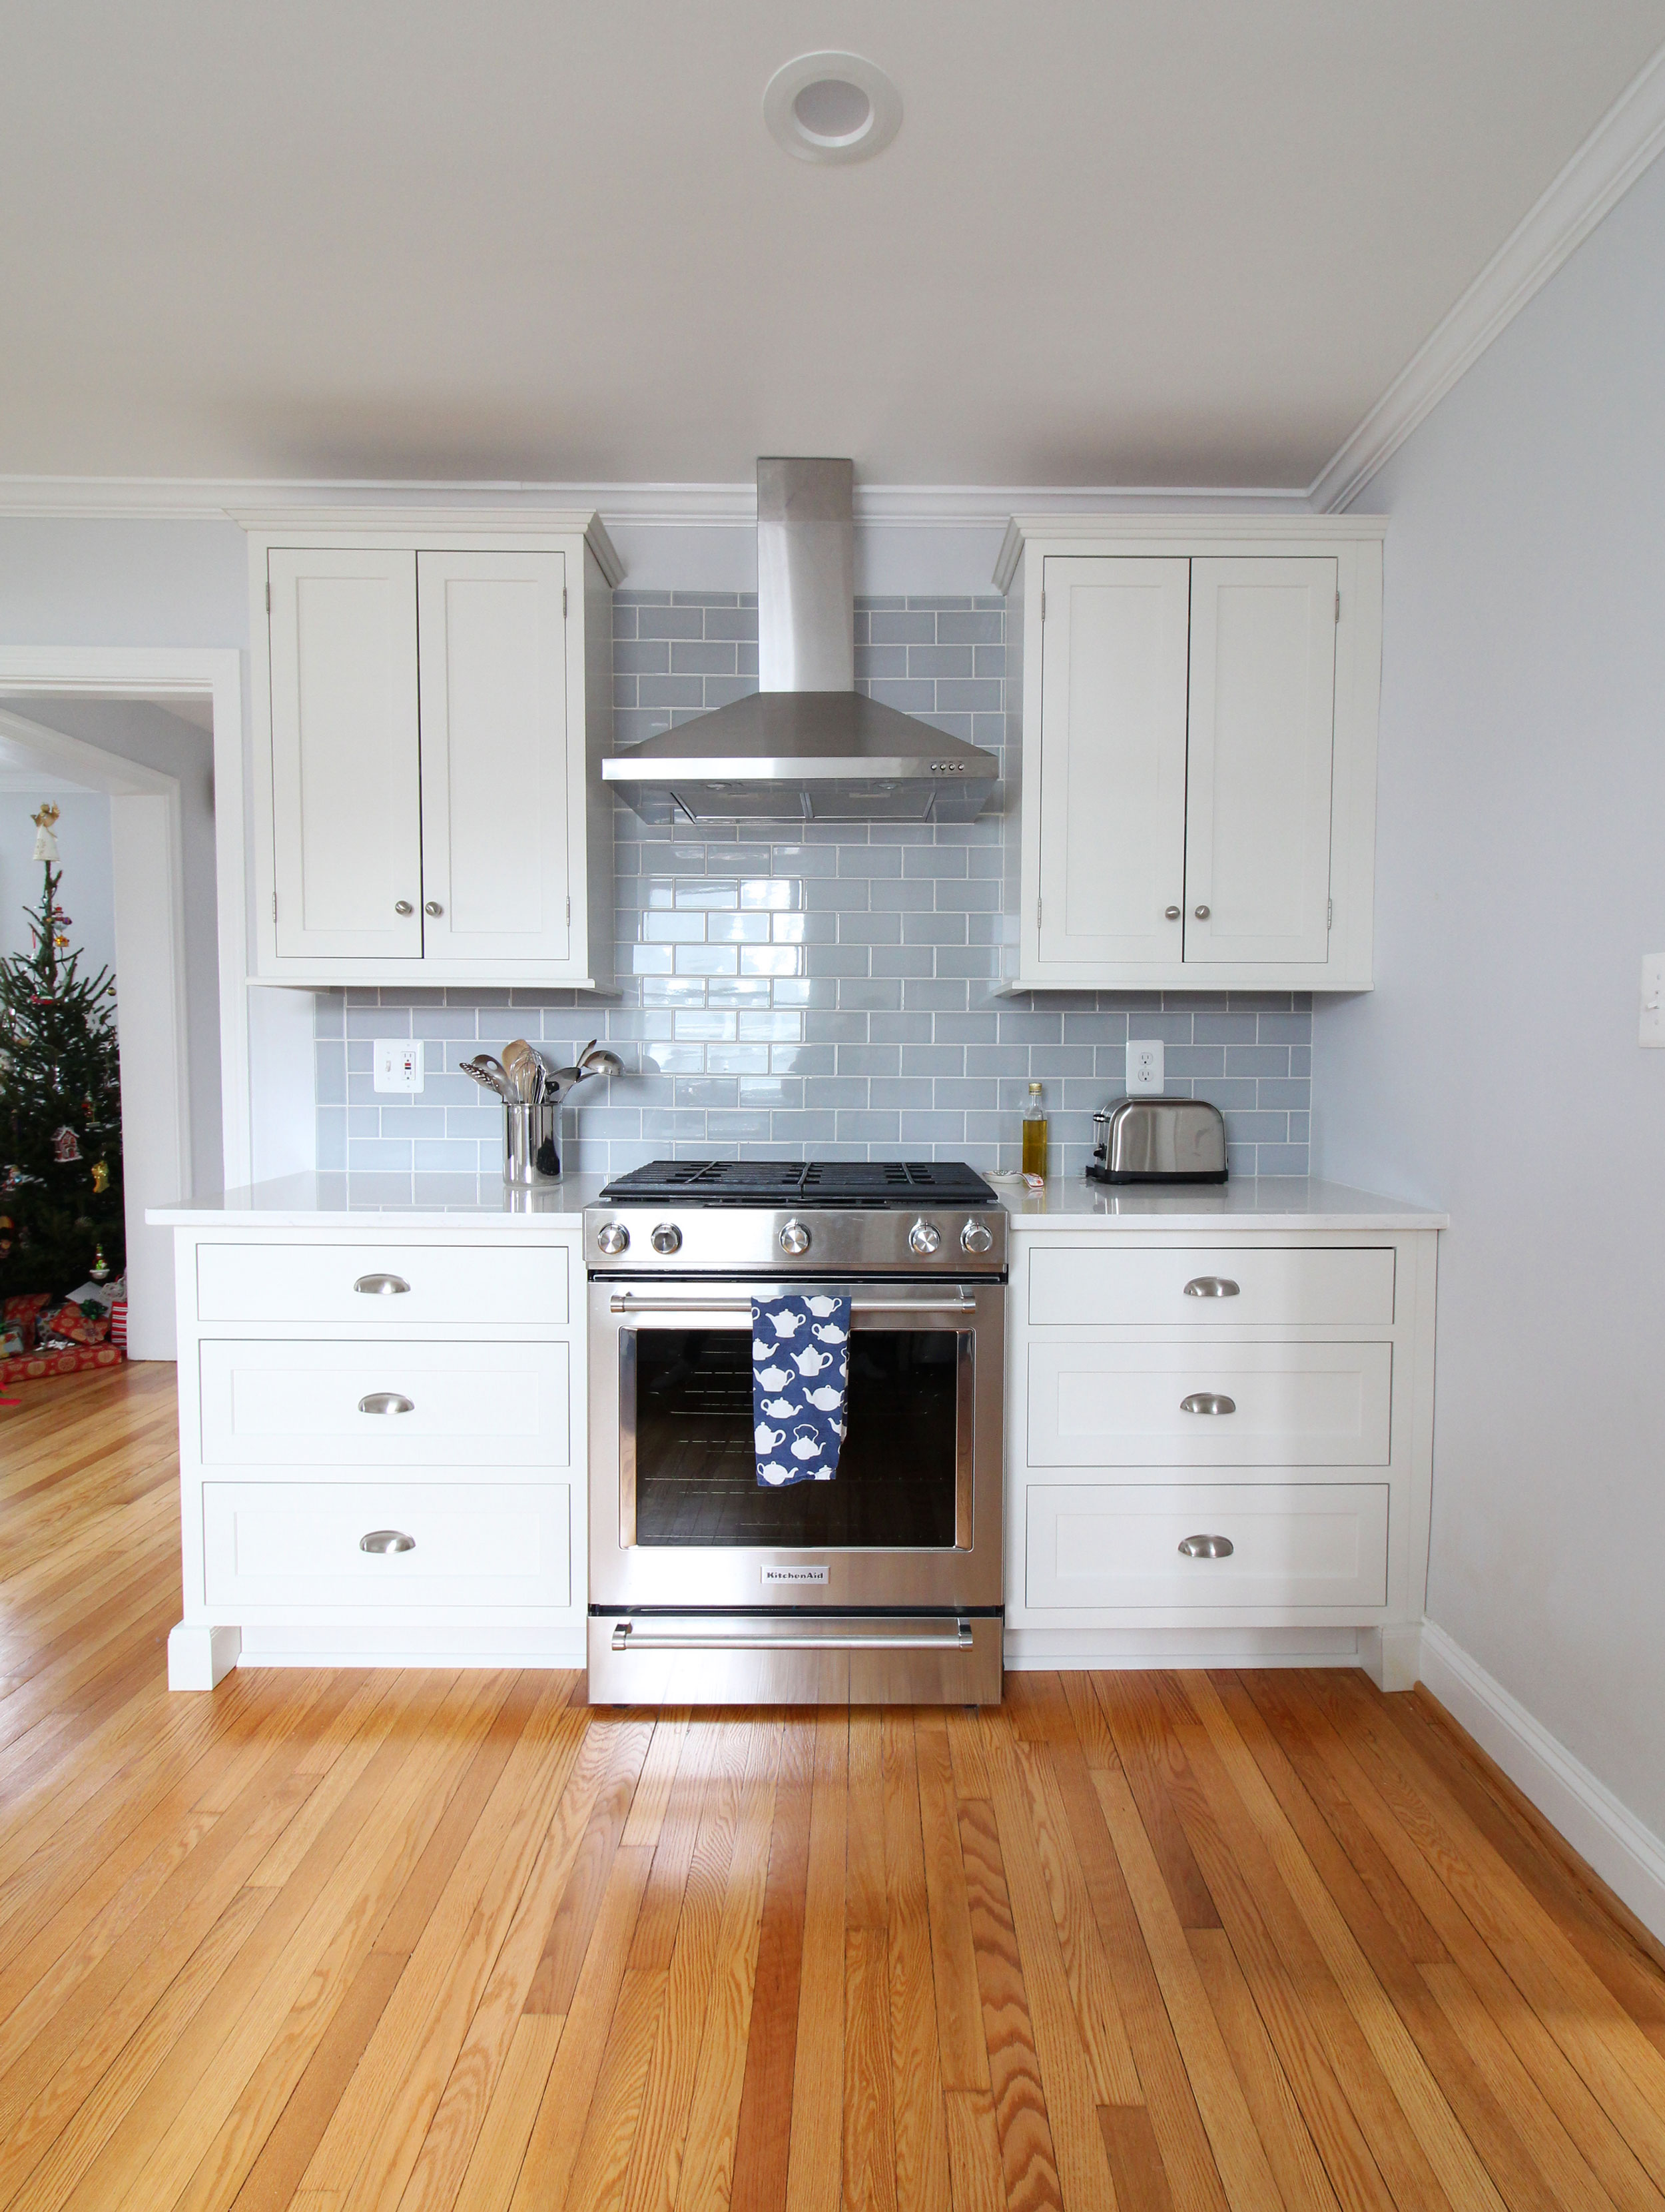 A stunning transitional farmhouse style white kitchen with inset cabinets opens up to the living room in this Virginia home. The range wall with blue glass subway tile is clean and fresh. You won't believe what this looked like before!